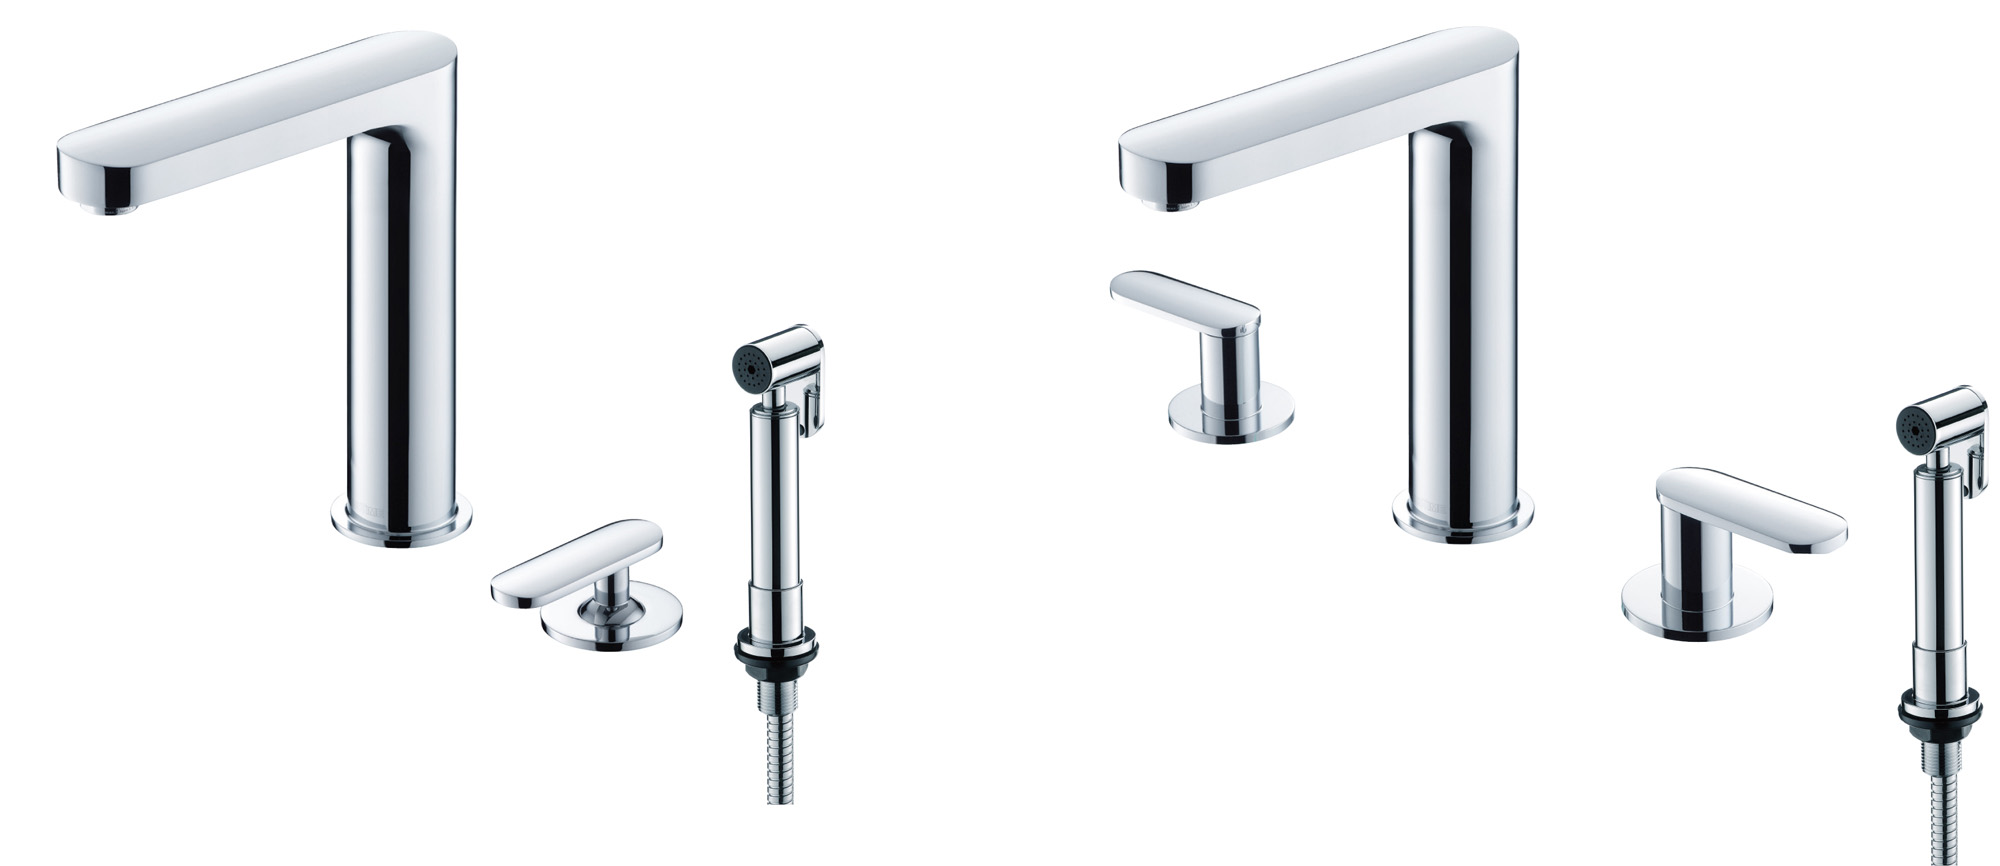 Charming Series Kitchen Faucet / SHENG TAI BRASSWARE CO., LTD.